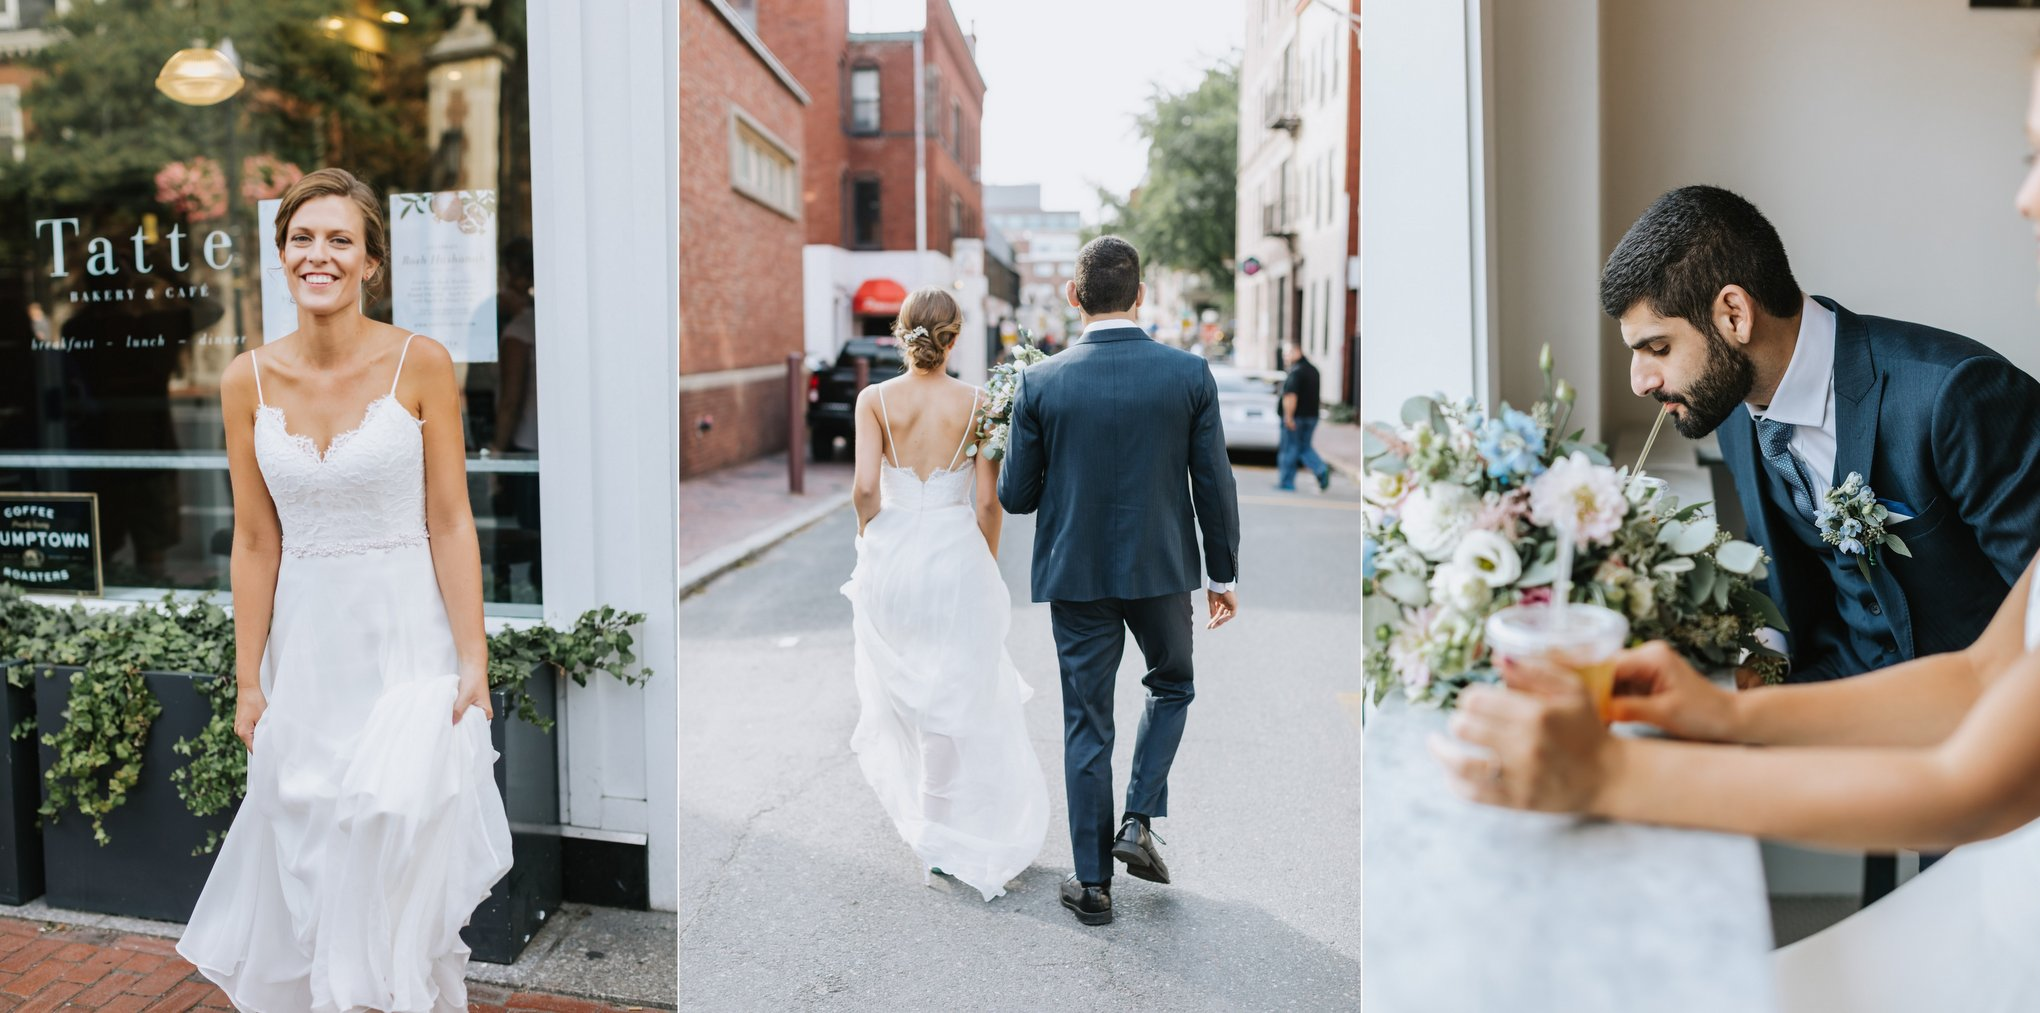 Cambridge_Puritan_Co_Wedding_Photographer_Harvard_21.jpg